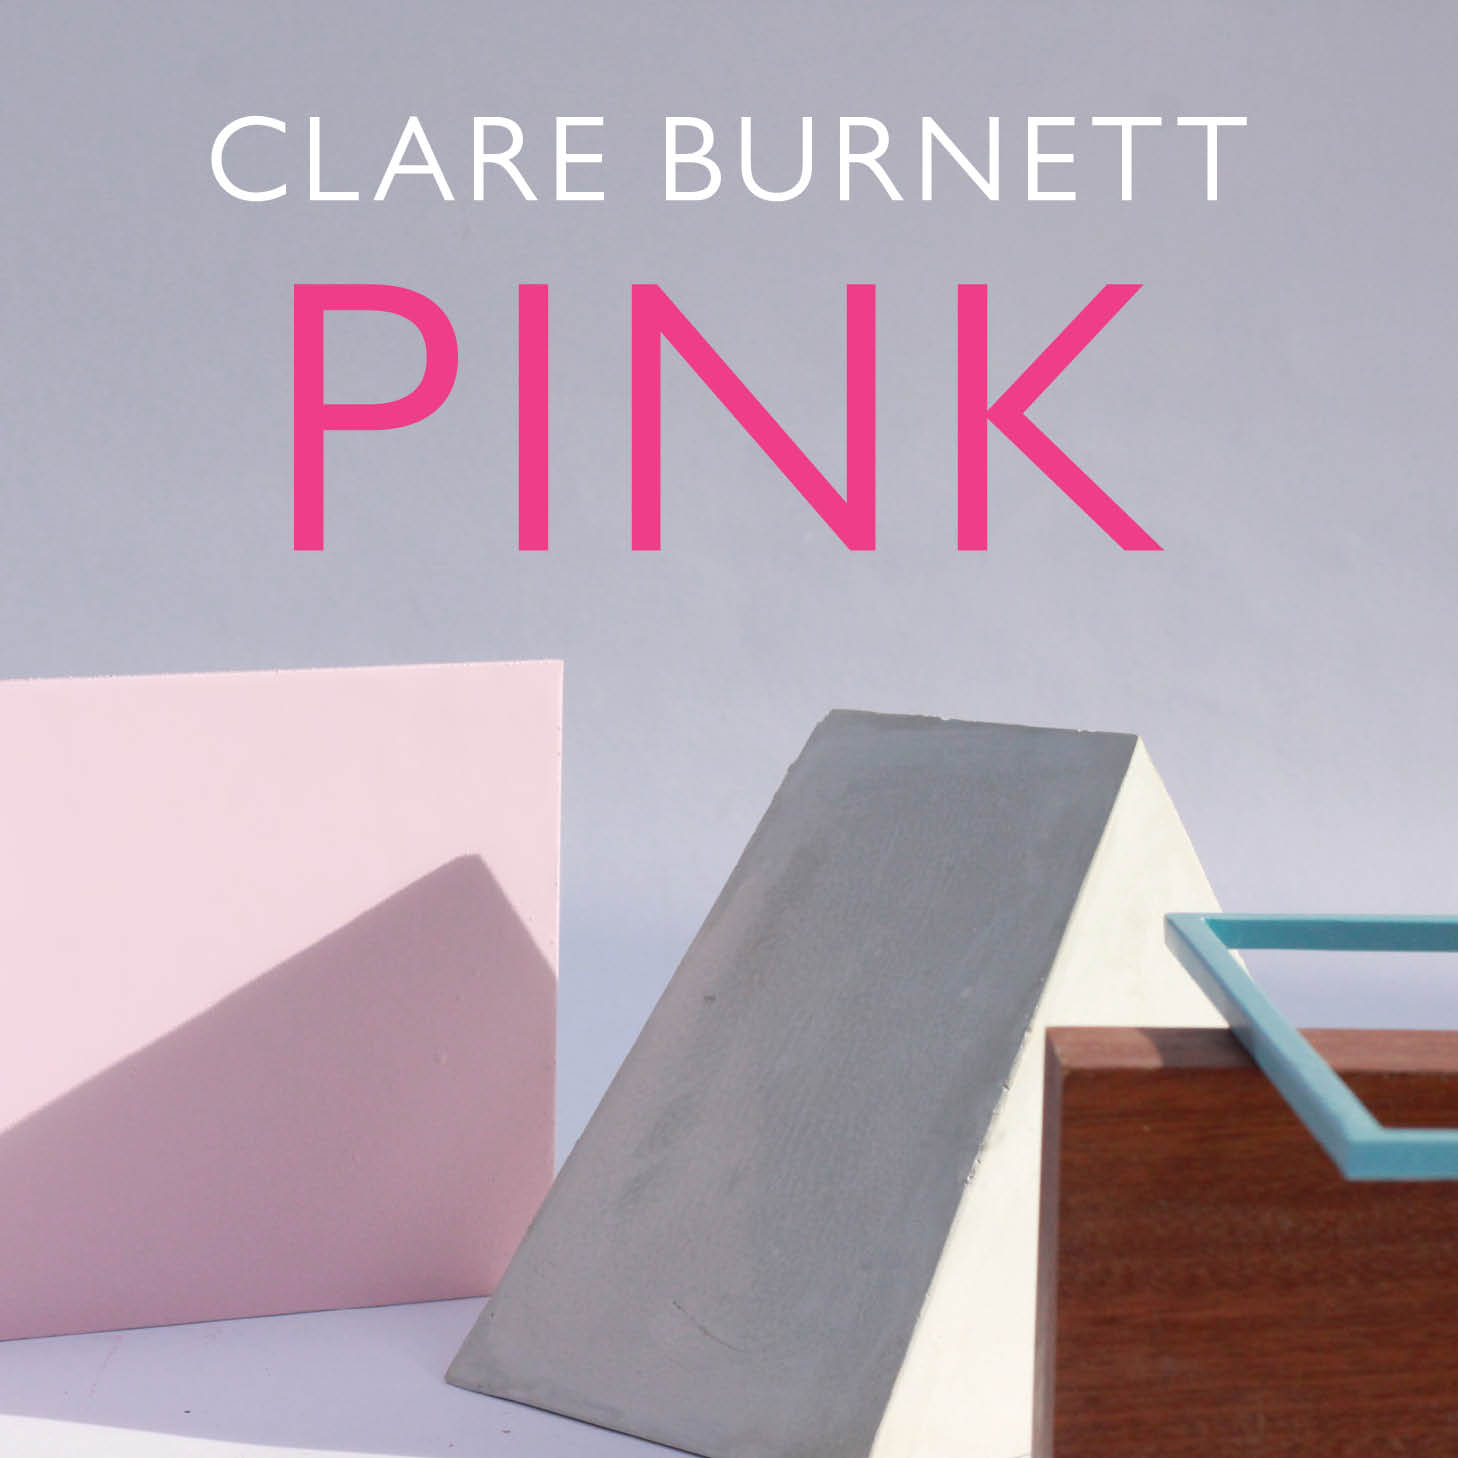 Clare Burnett exhibition 'Pink' at William Benington Gallery. Opens 22nd Oct 2015. Image courtesy William Benington